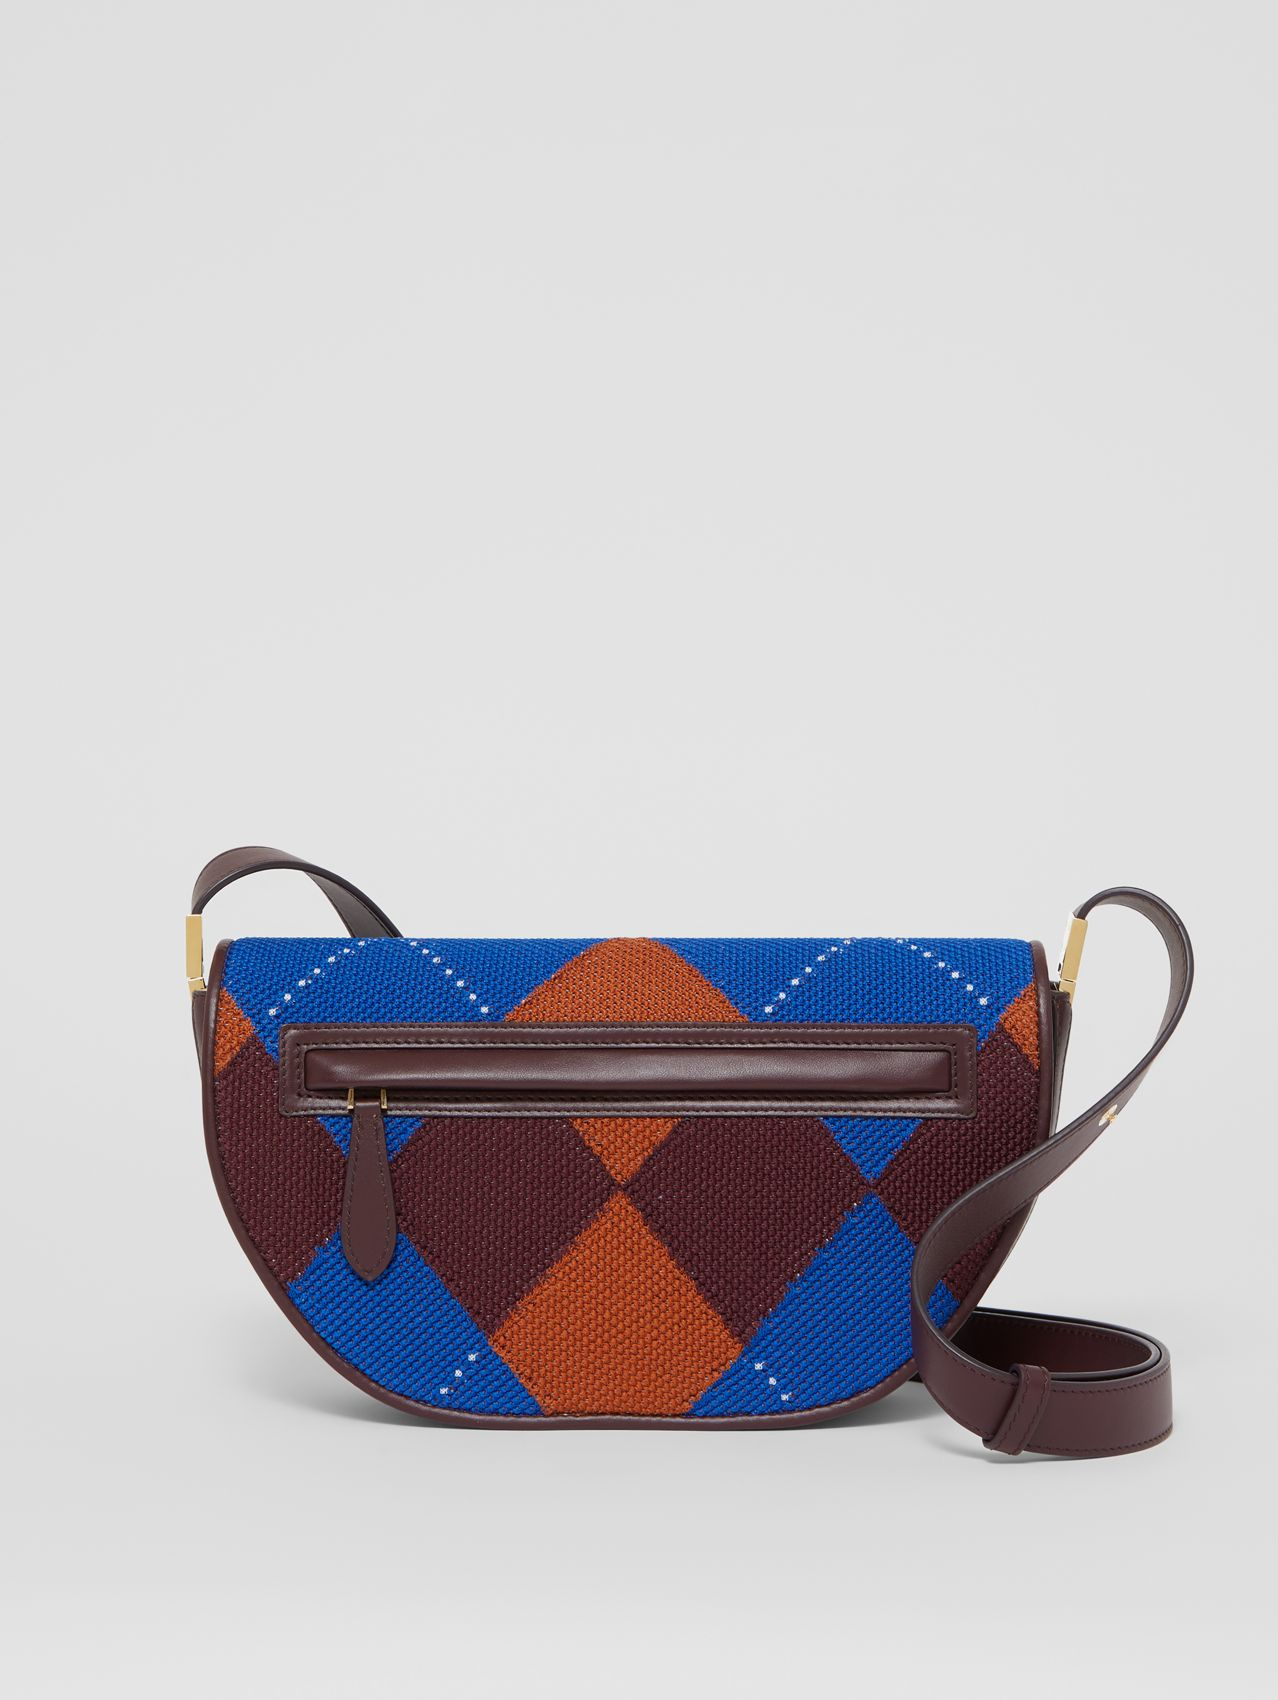 Small Argyle Knit and Leather Olympia Bag in Bright Blue